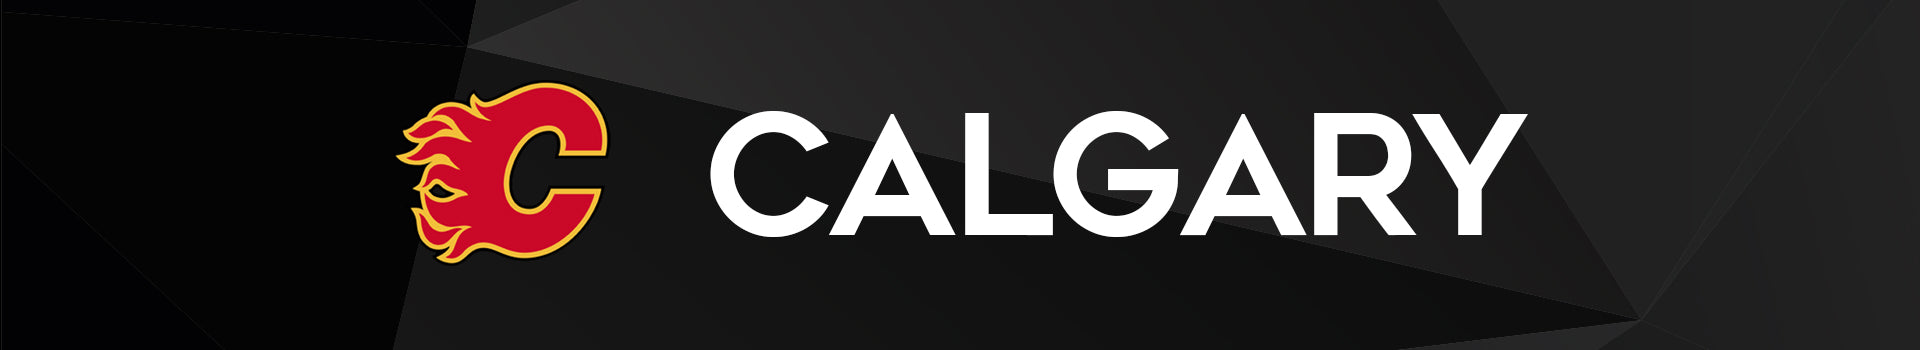 Shop Your City - Calgary